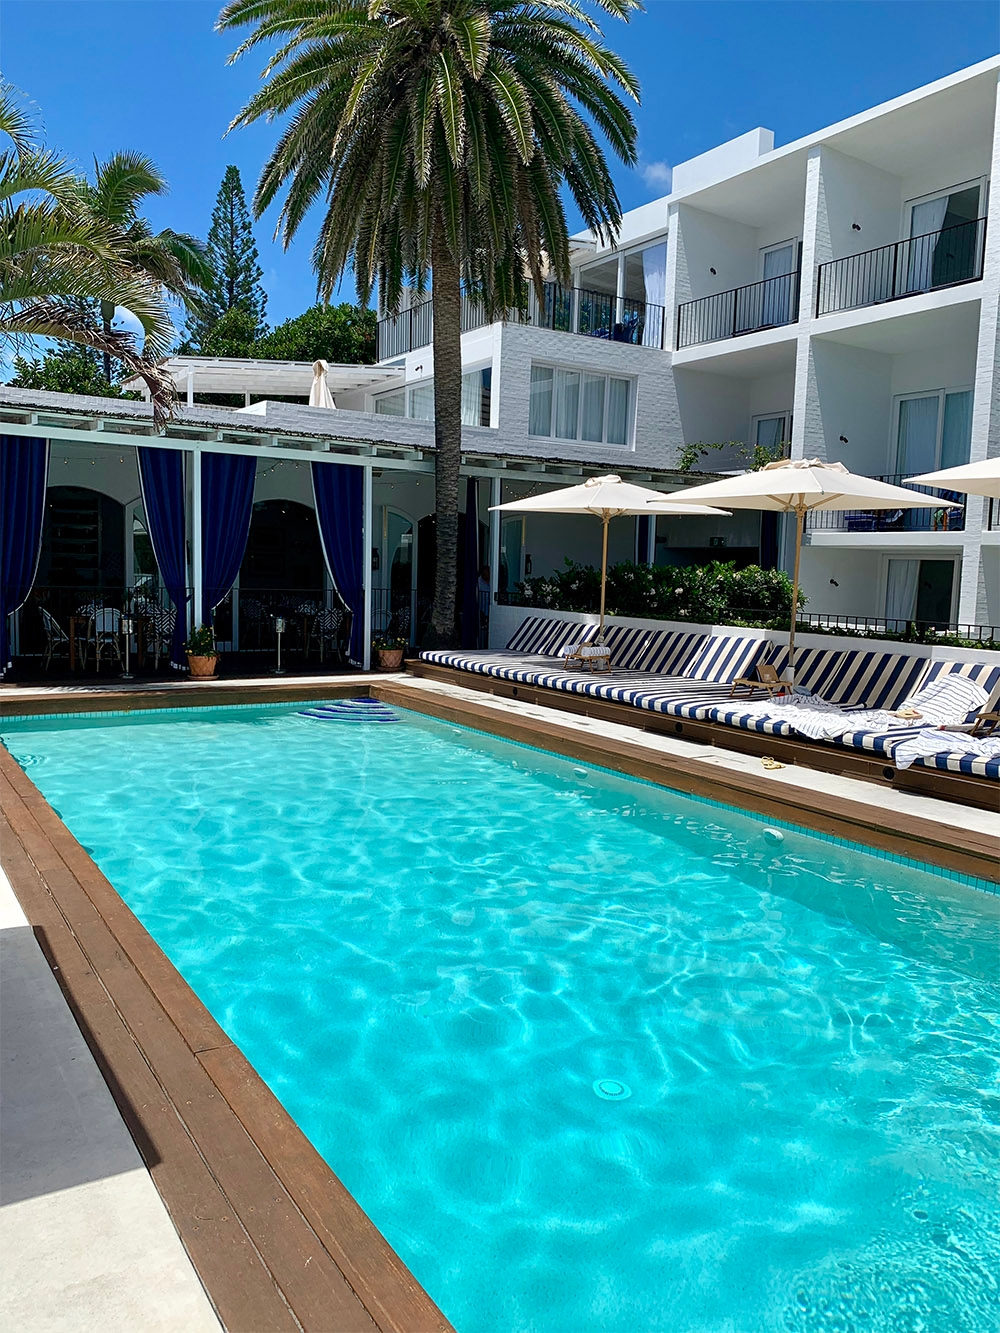 The bright blue pool at Halcyon House is invitational with its bordering sun loungers and umbrellas